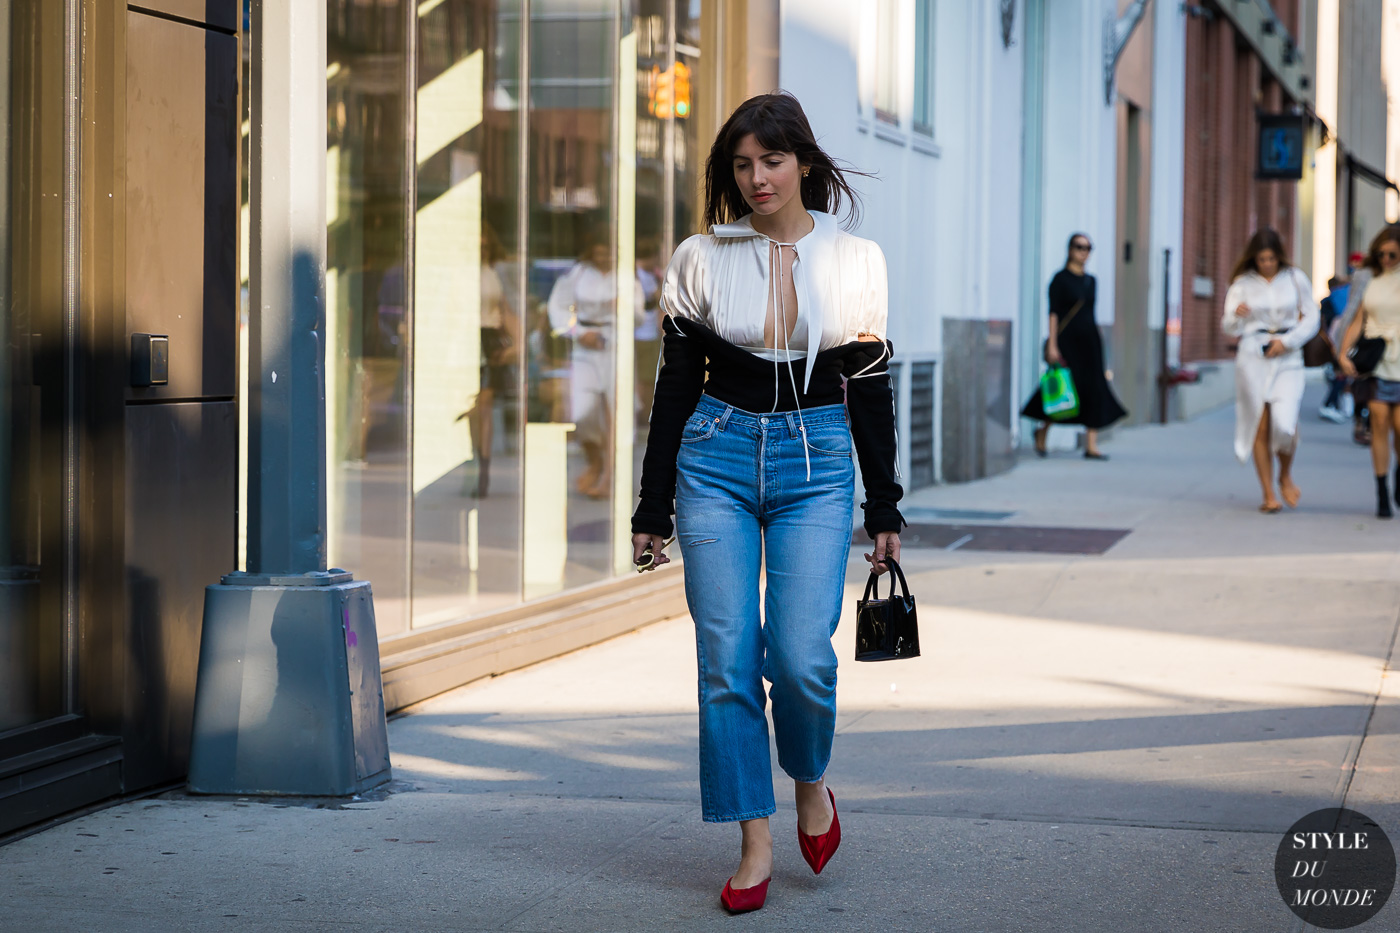 Kat Collings by STYLEDUMONDE Street Style Fashion Photography_48A6236